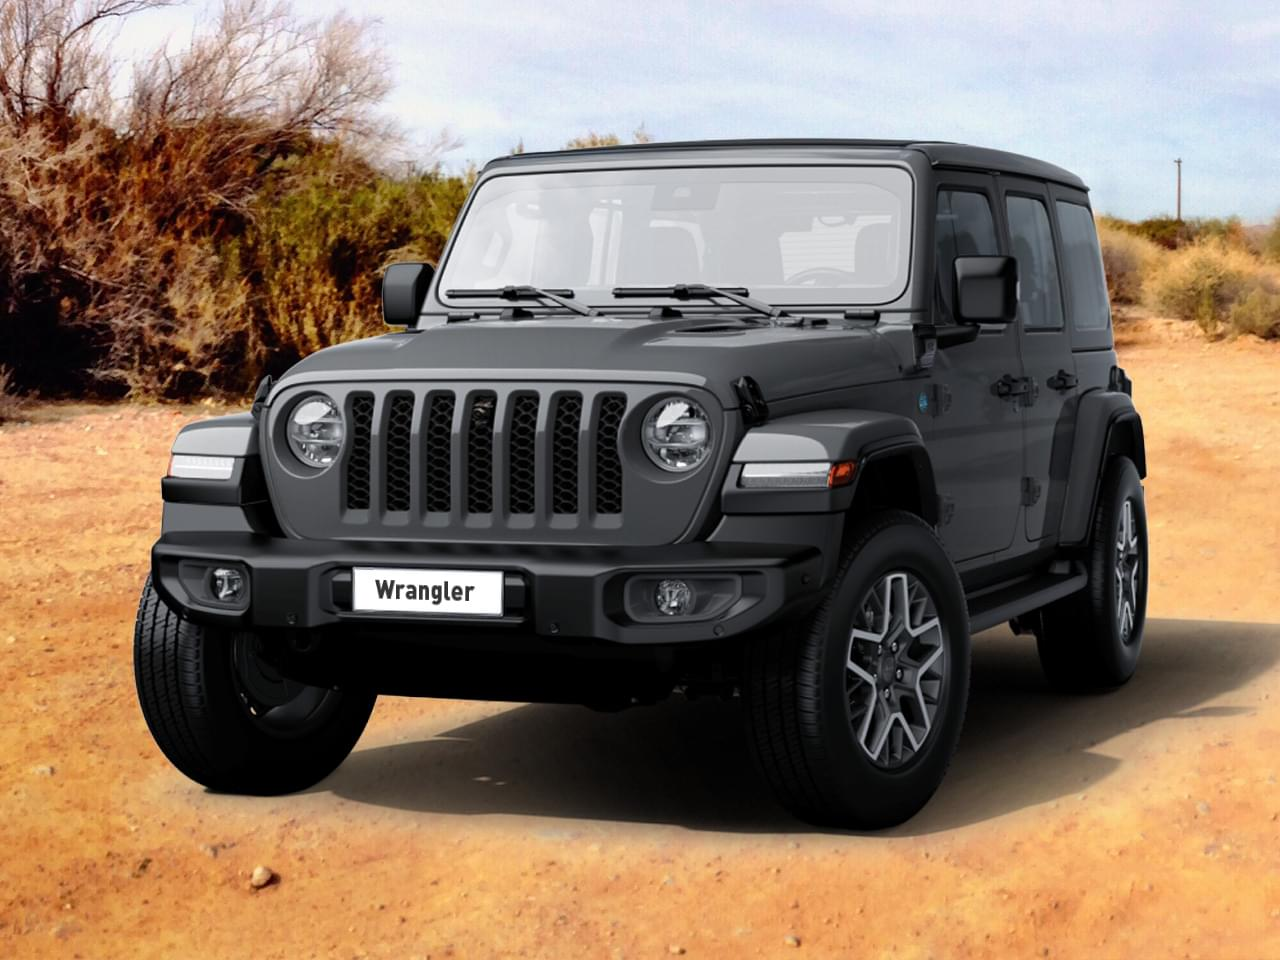 Jeep Wrangler Unlimited 4xe First Edition - Plug-in Hybrid Automatik